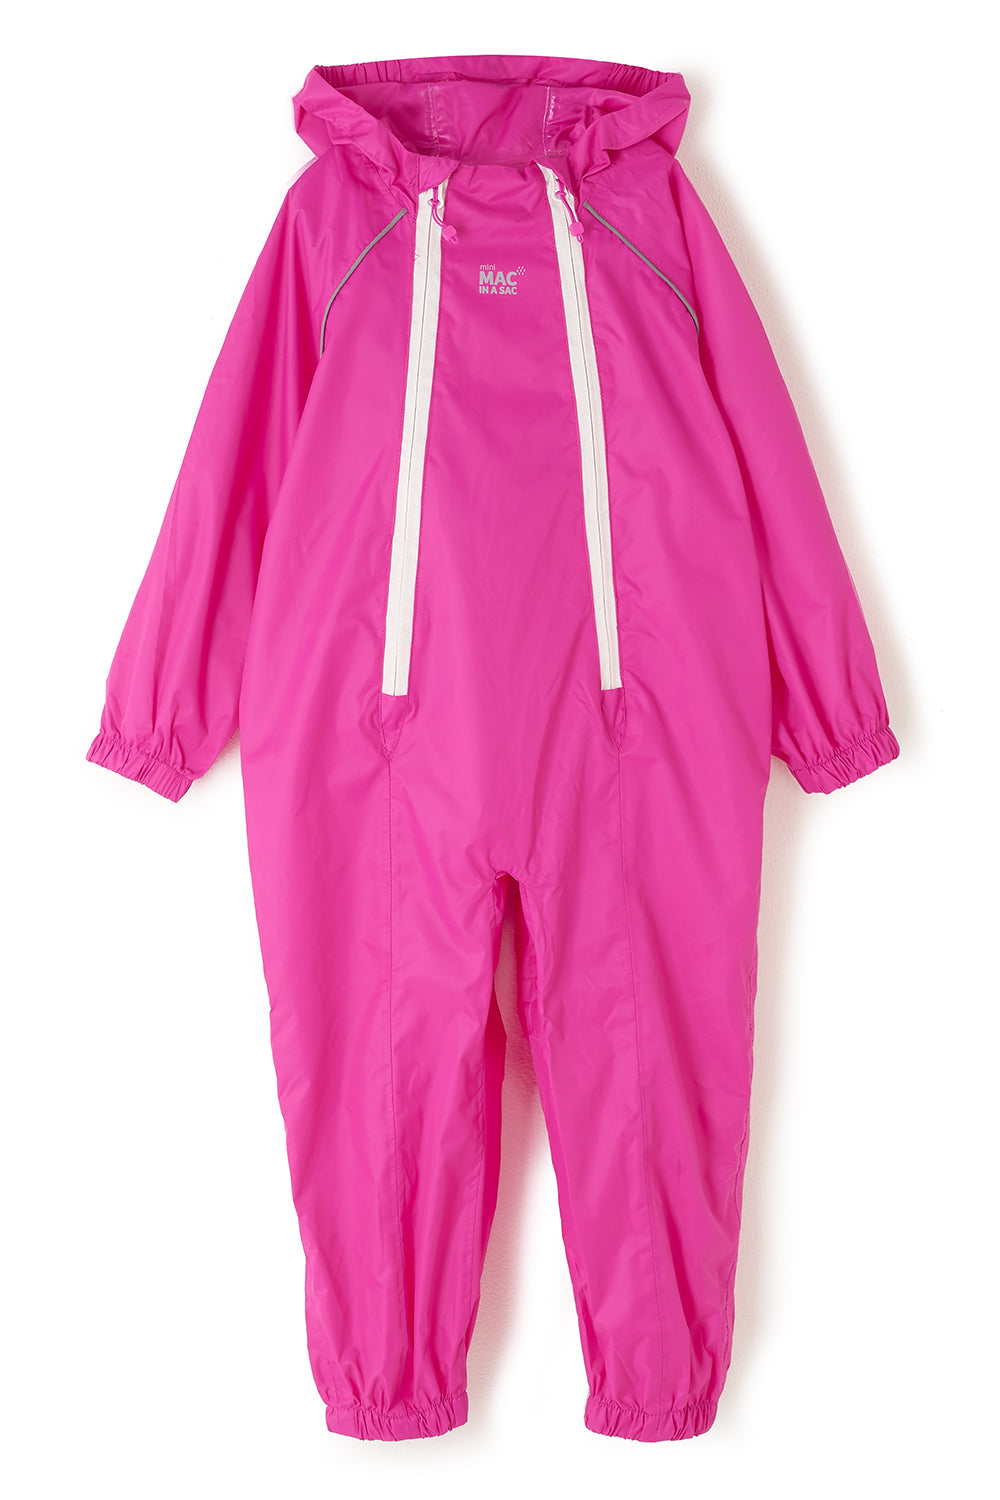 Puddlesuit Packable Waterproof Kids Rainsuit - Pink